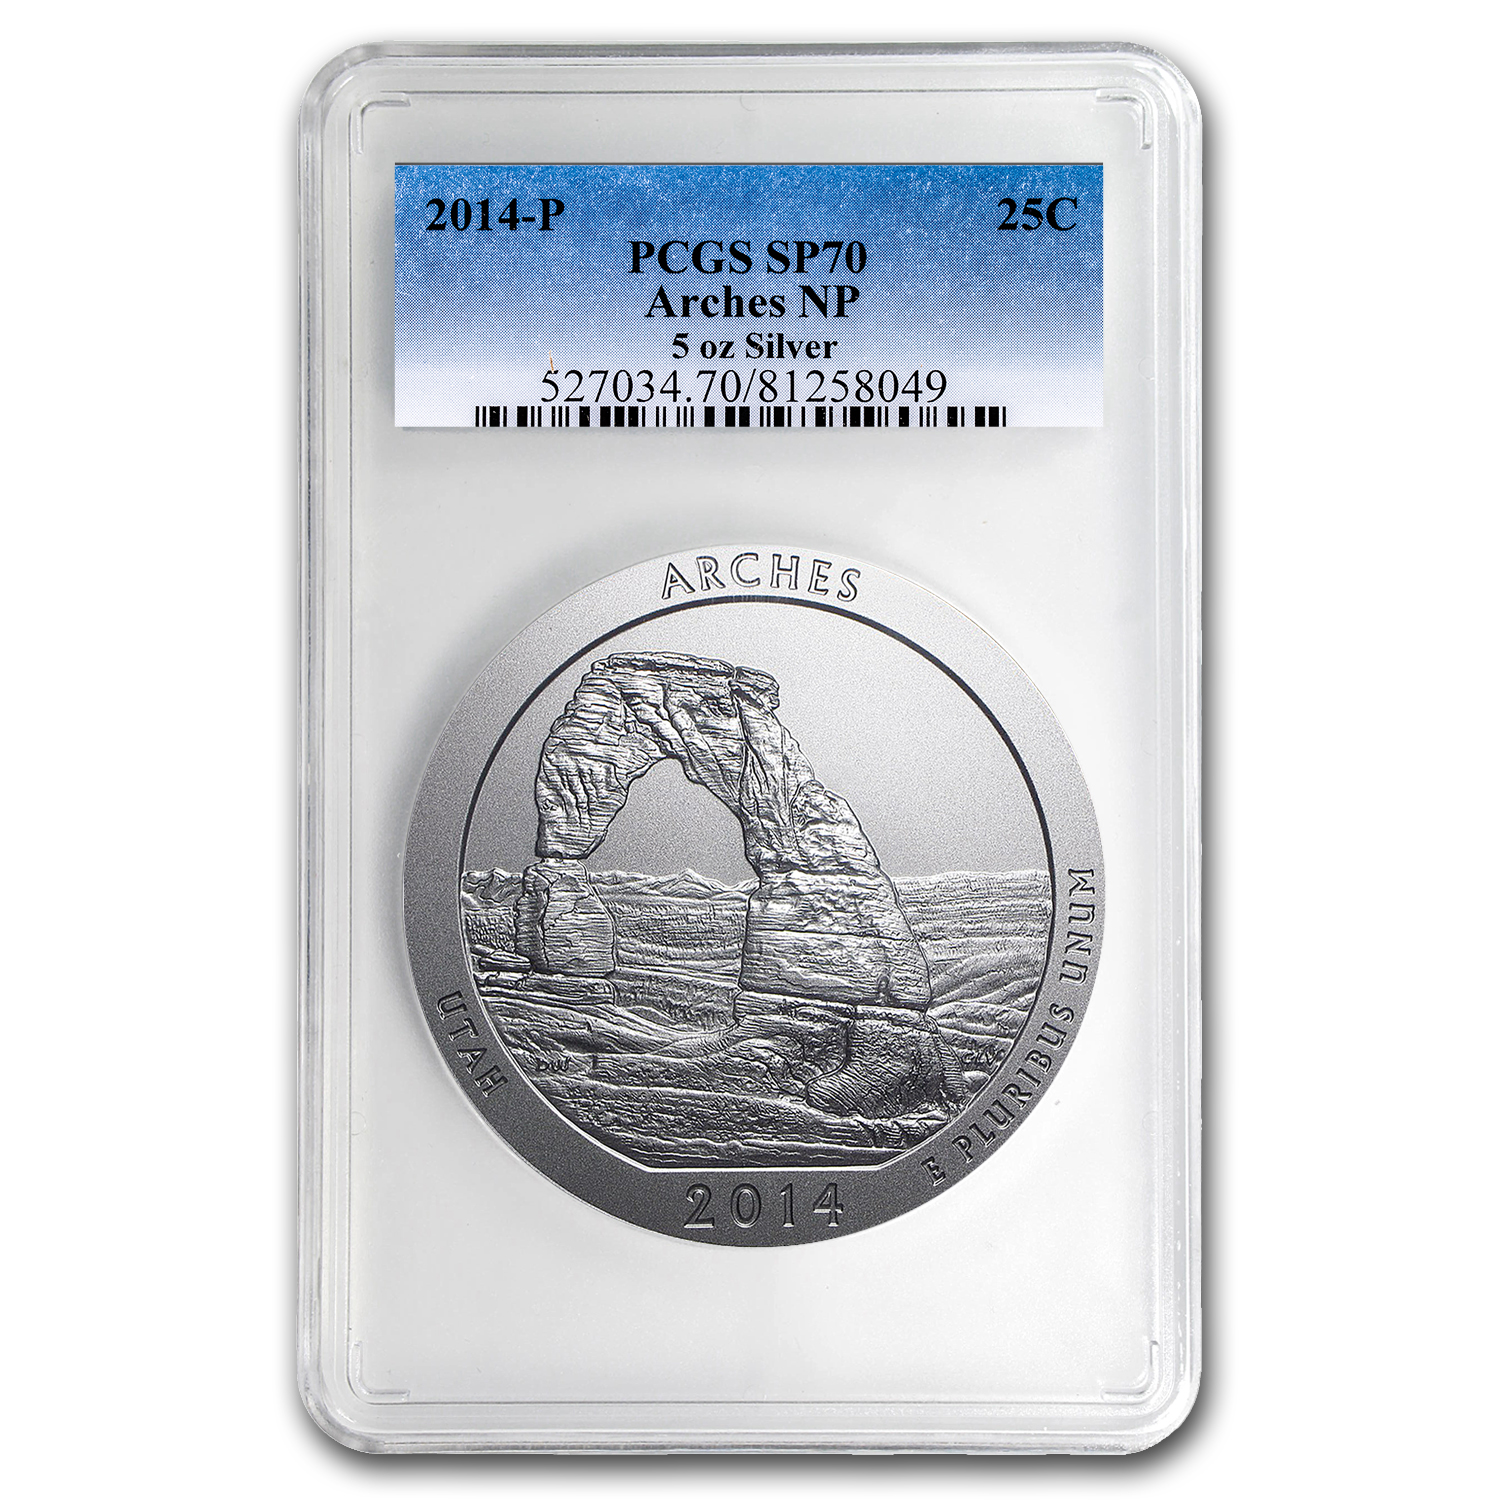 2014-P 5 oz Silver ATB Arches SP-70 PCGS